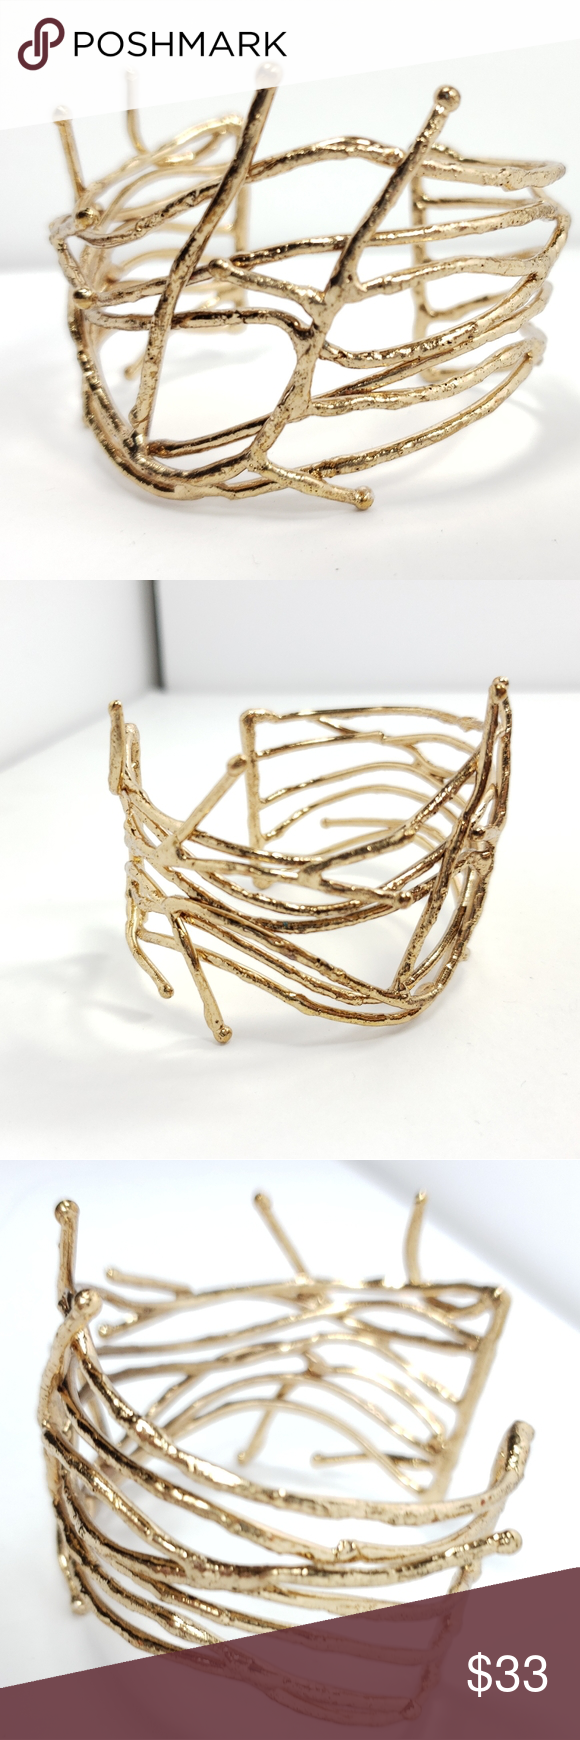 GORGEOUS gold tone branch style bracelet GORGEOUS  No markings of maker  *a7 Jewelry Bracelets #myposhpicks